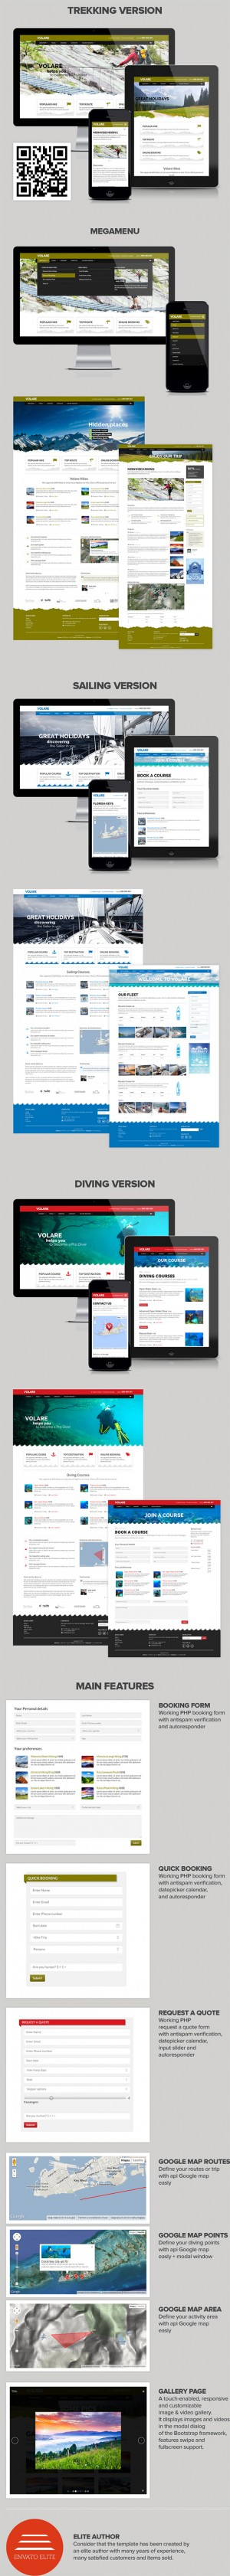 #webdesign #travel #Volare Trekking, Sailing, Diving Website Template ->